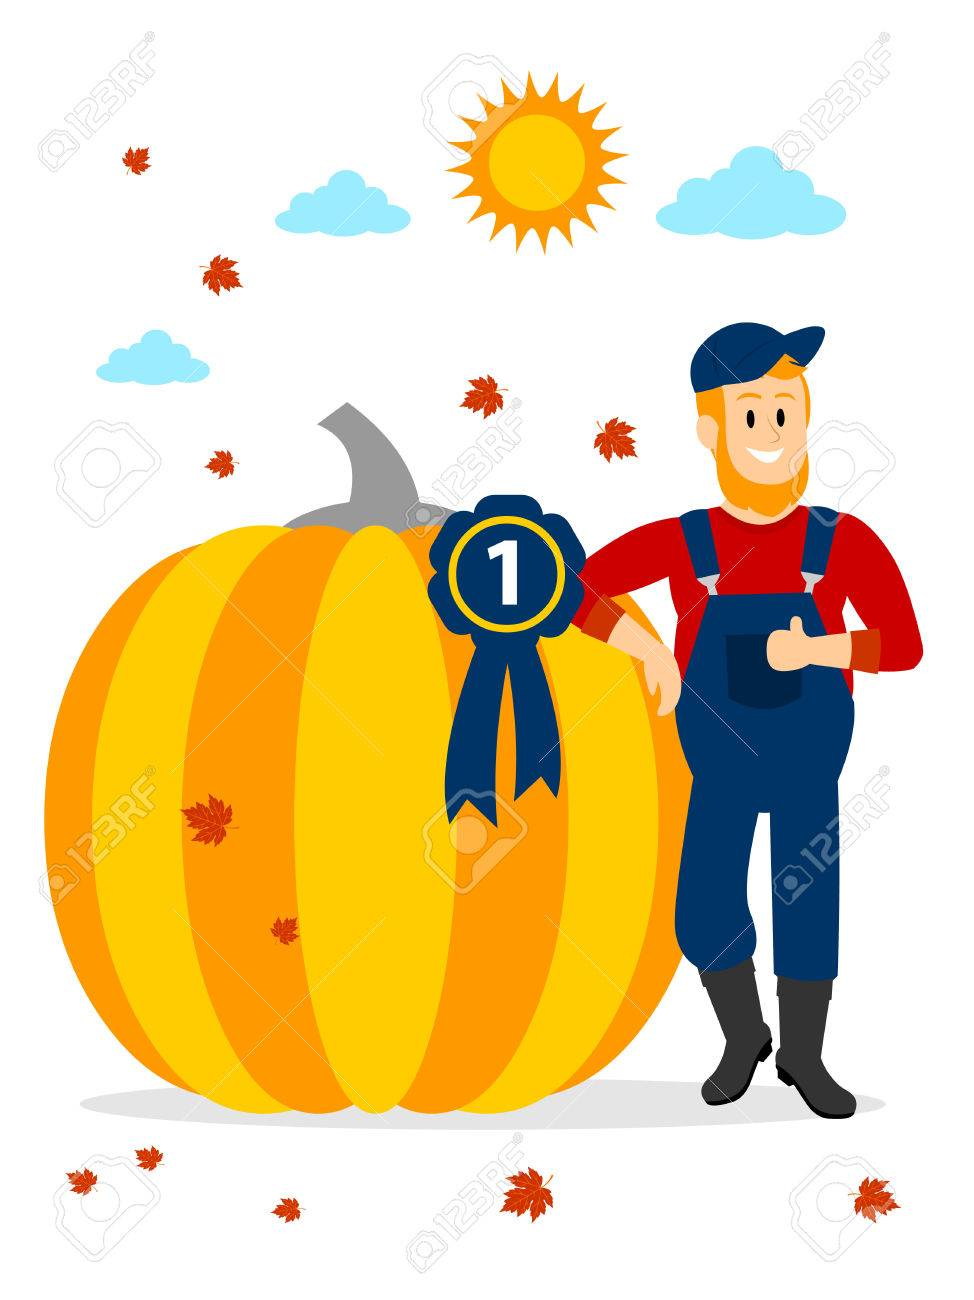 hight resolution of farmer winning pumpkin contest at the first place clipart stock vector 57577116